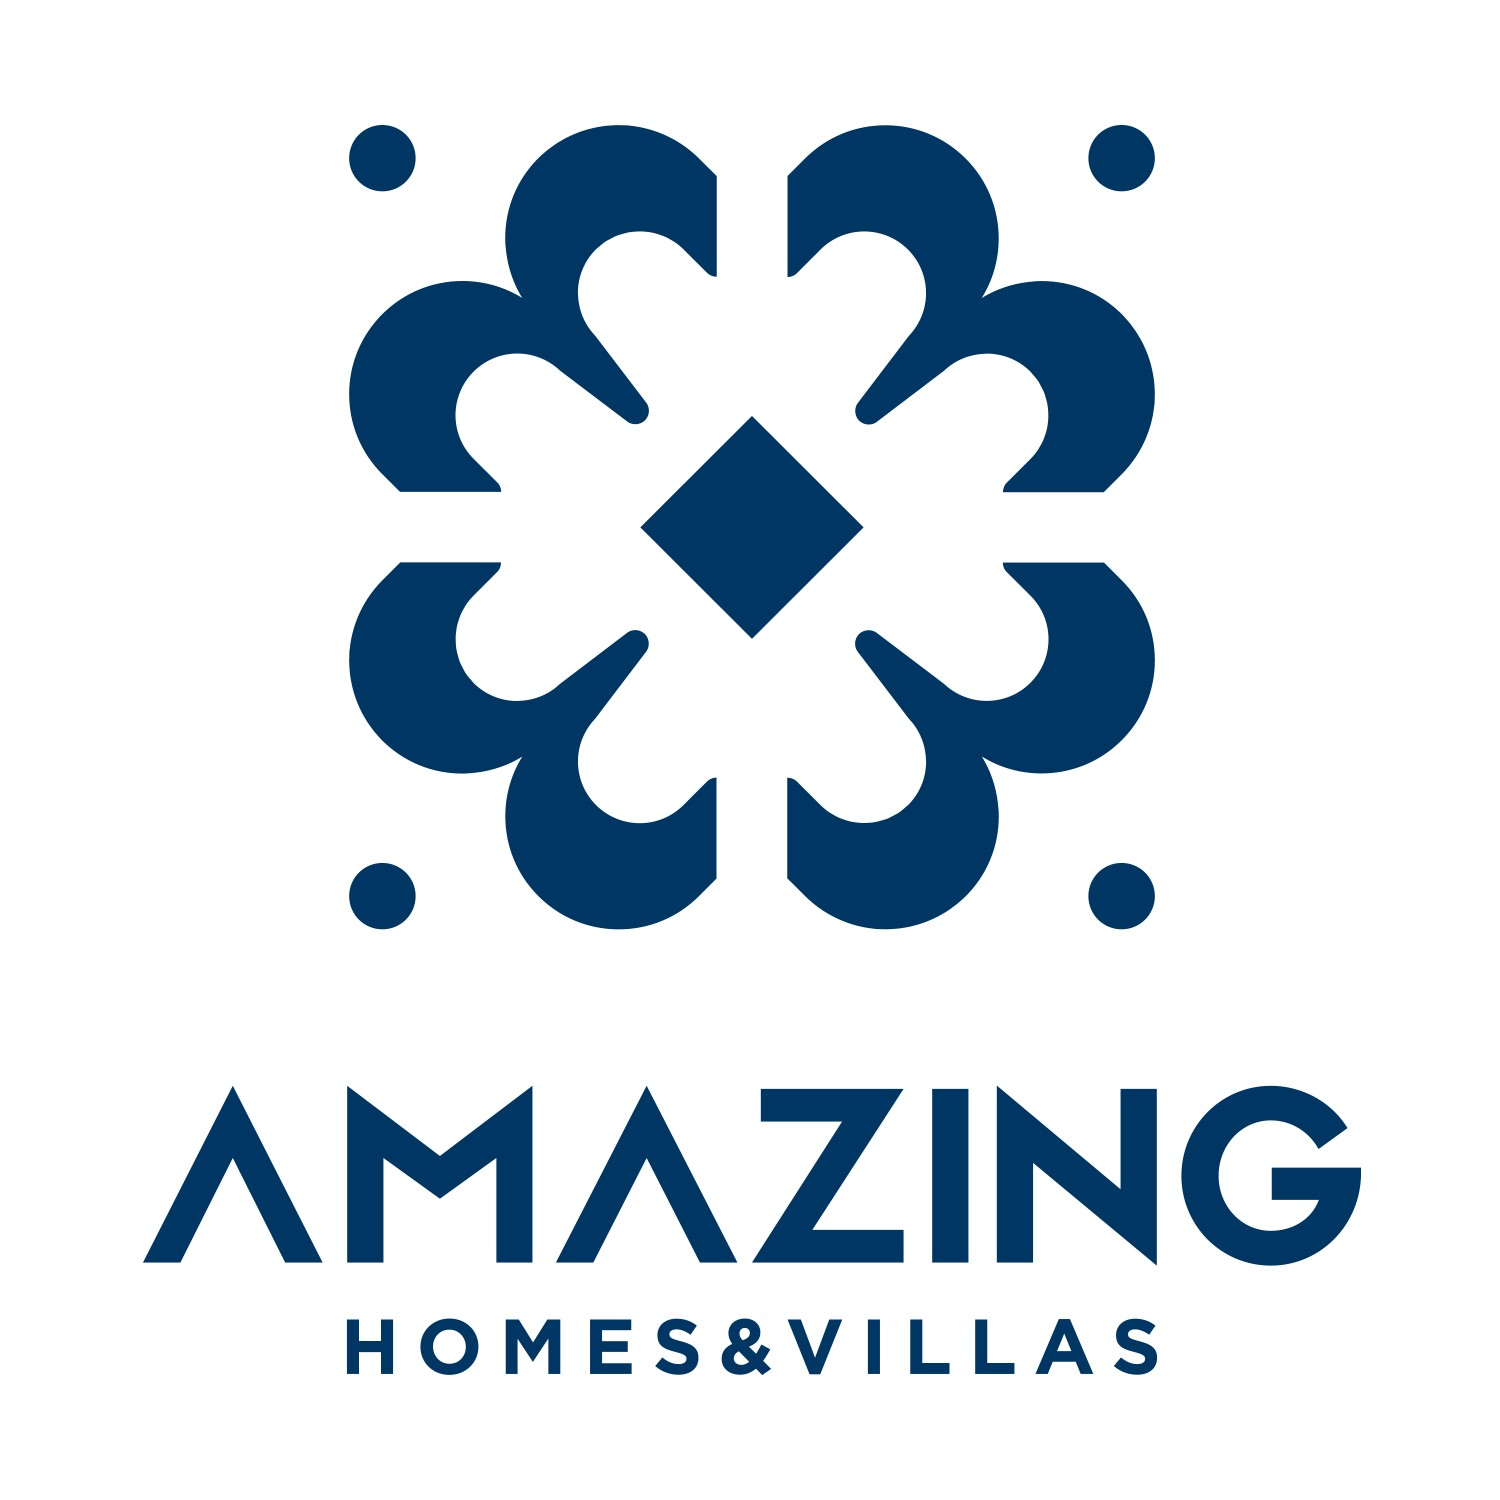 Amazing Homes & Villas